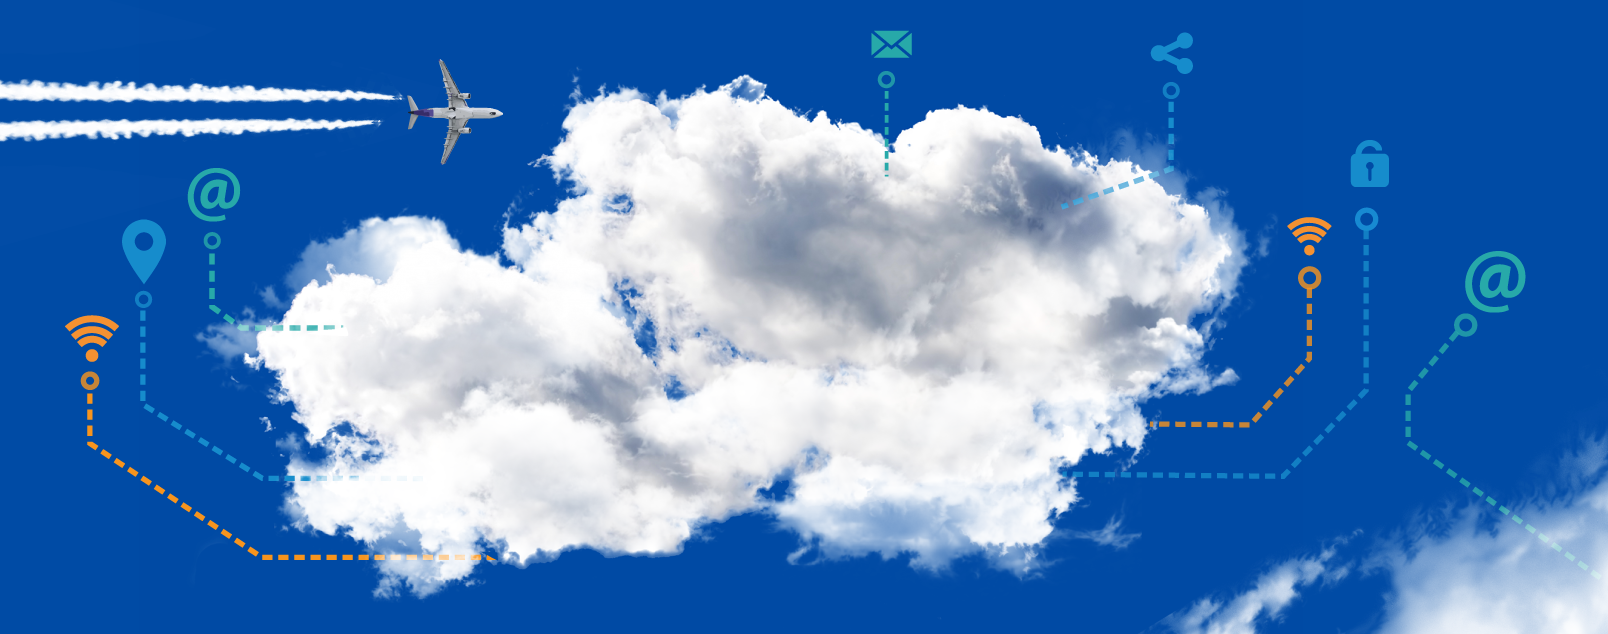 new-background-image-landing-page-cloud.png